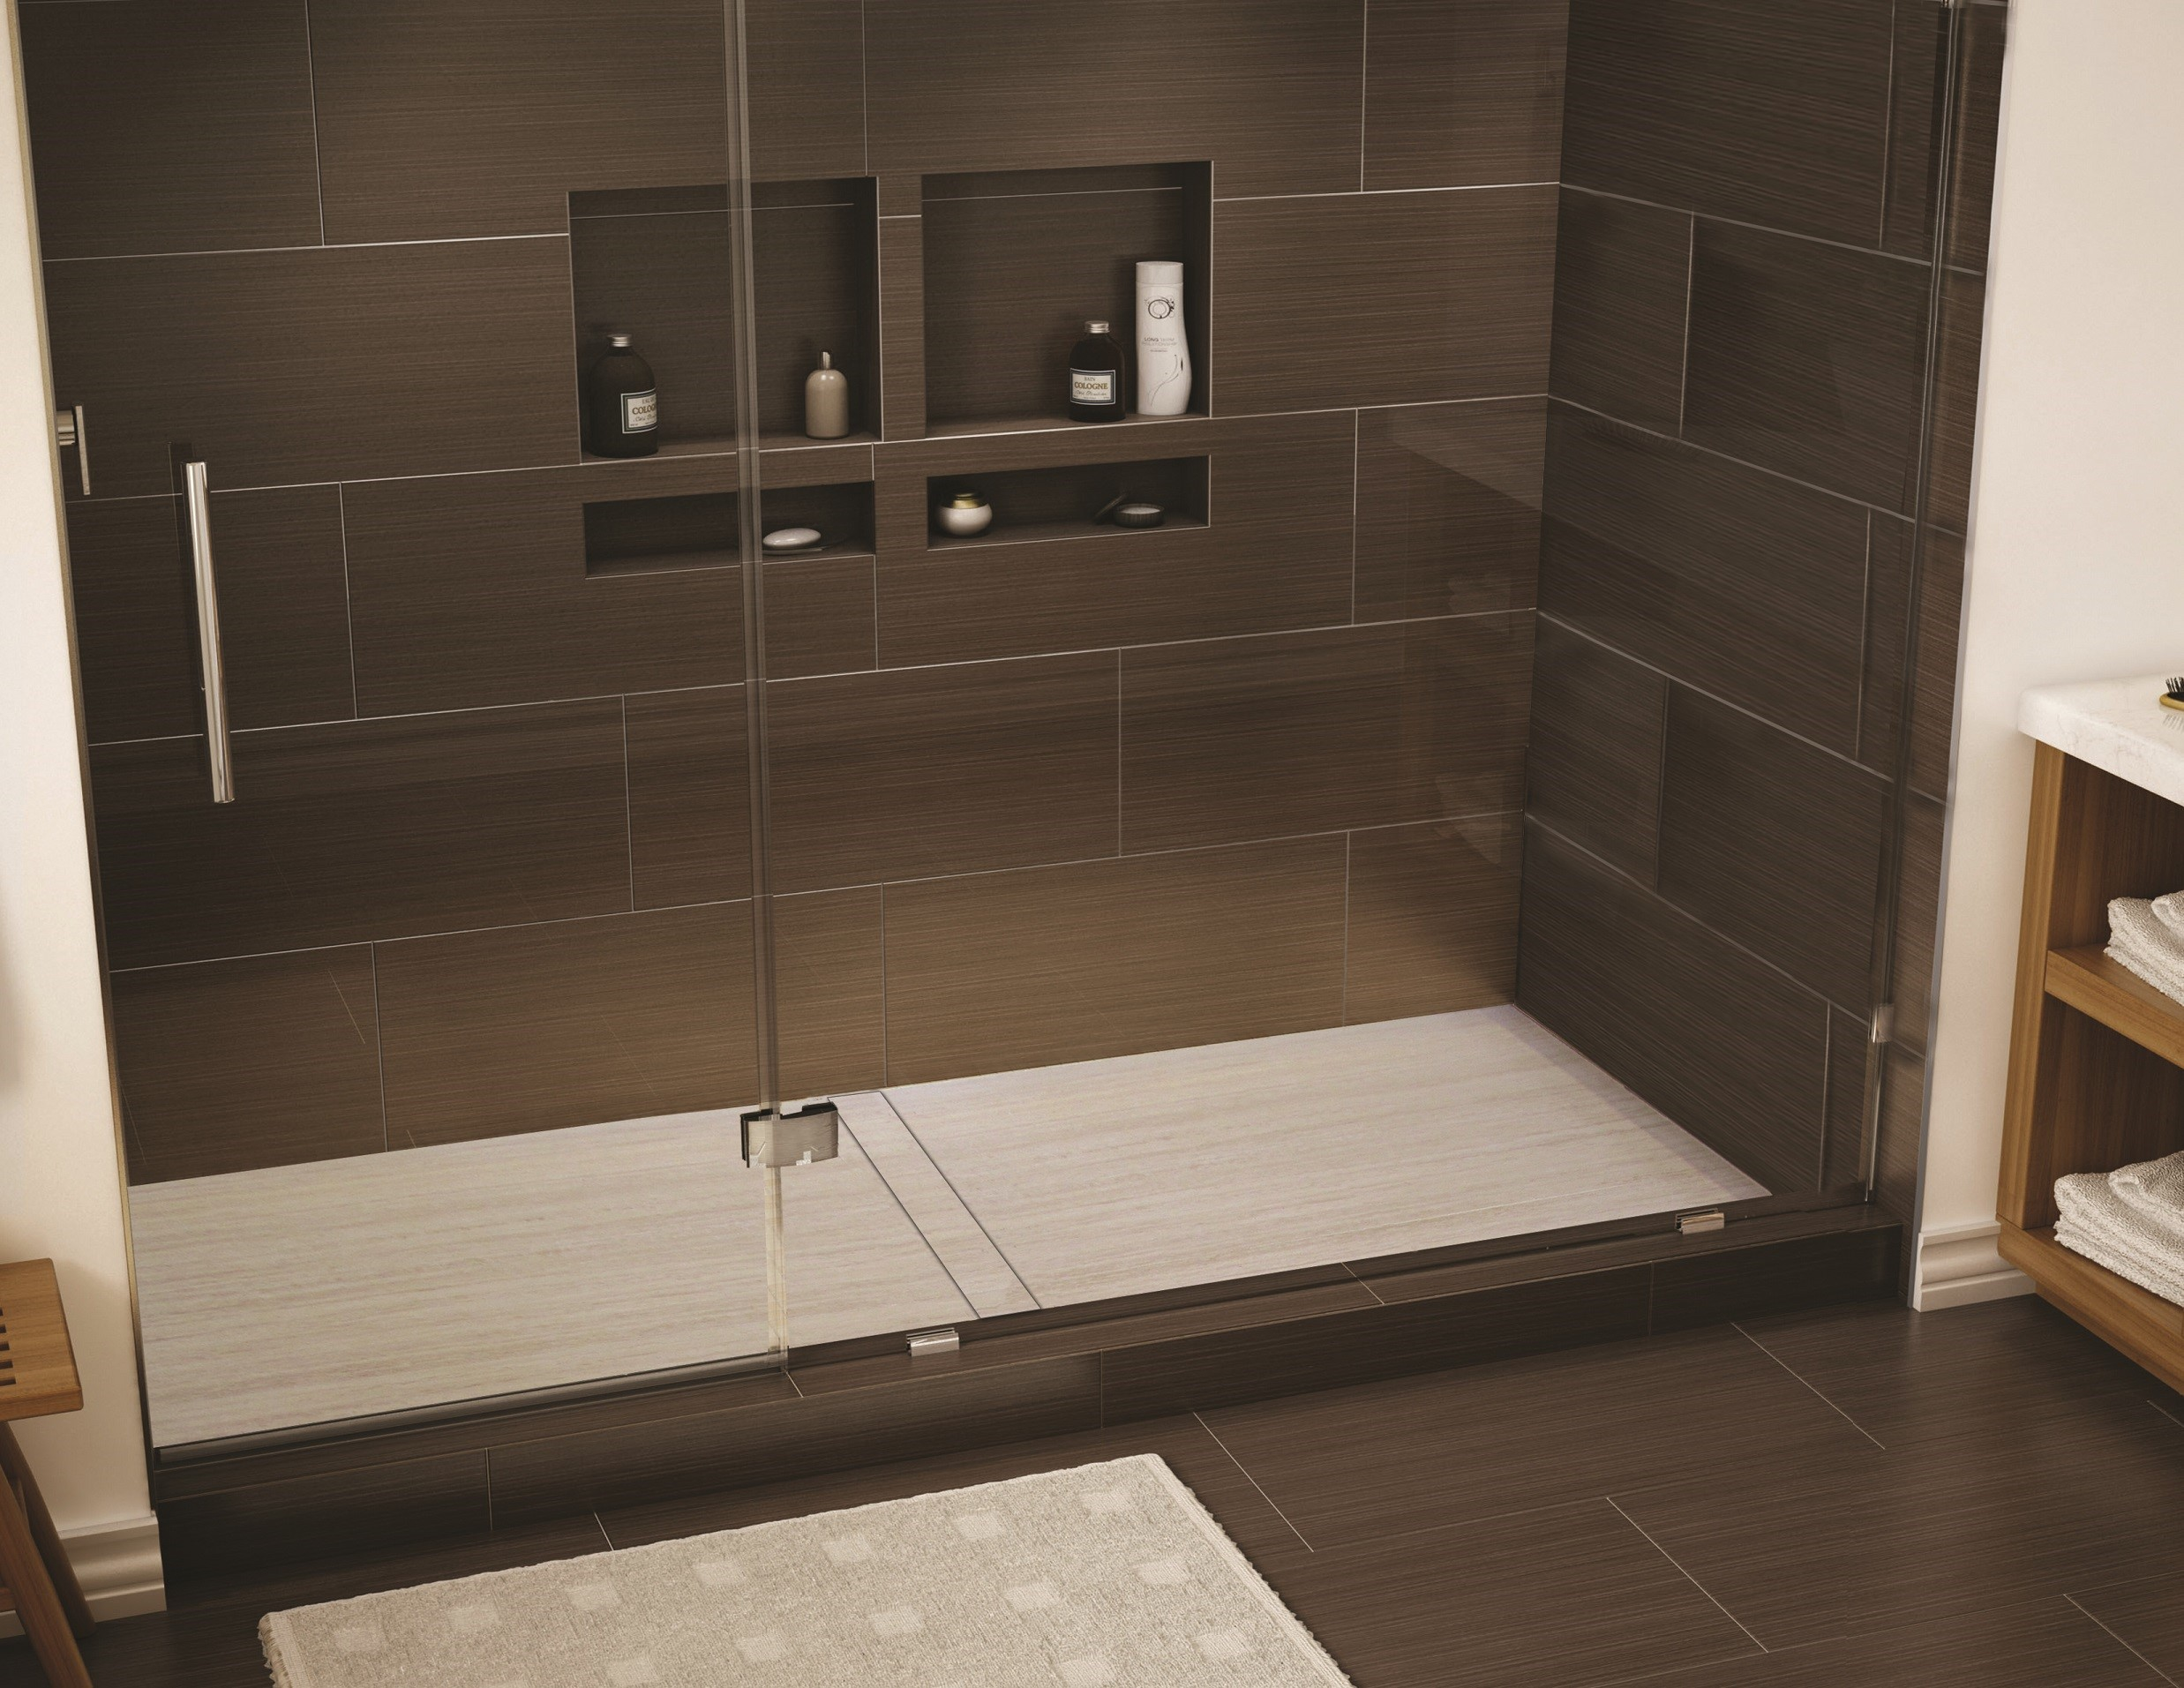 TILE REDI\'S REDI MEGA™ SHOWER PAN WINS BIG! | Commercial ...